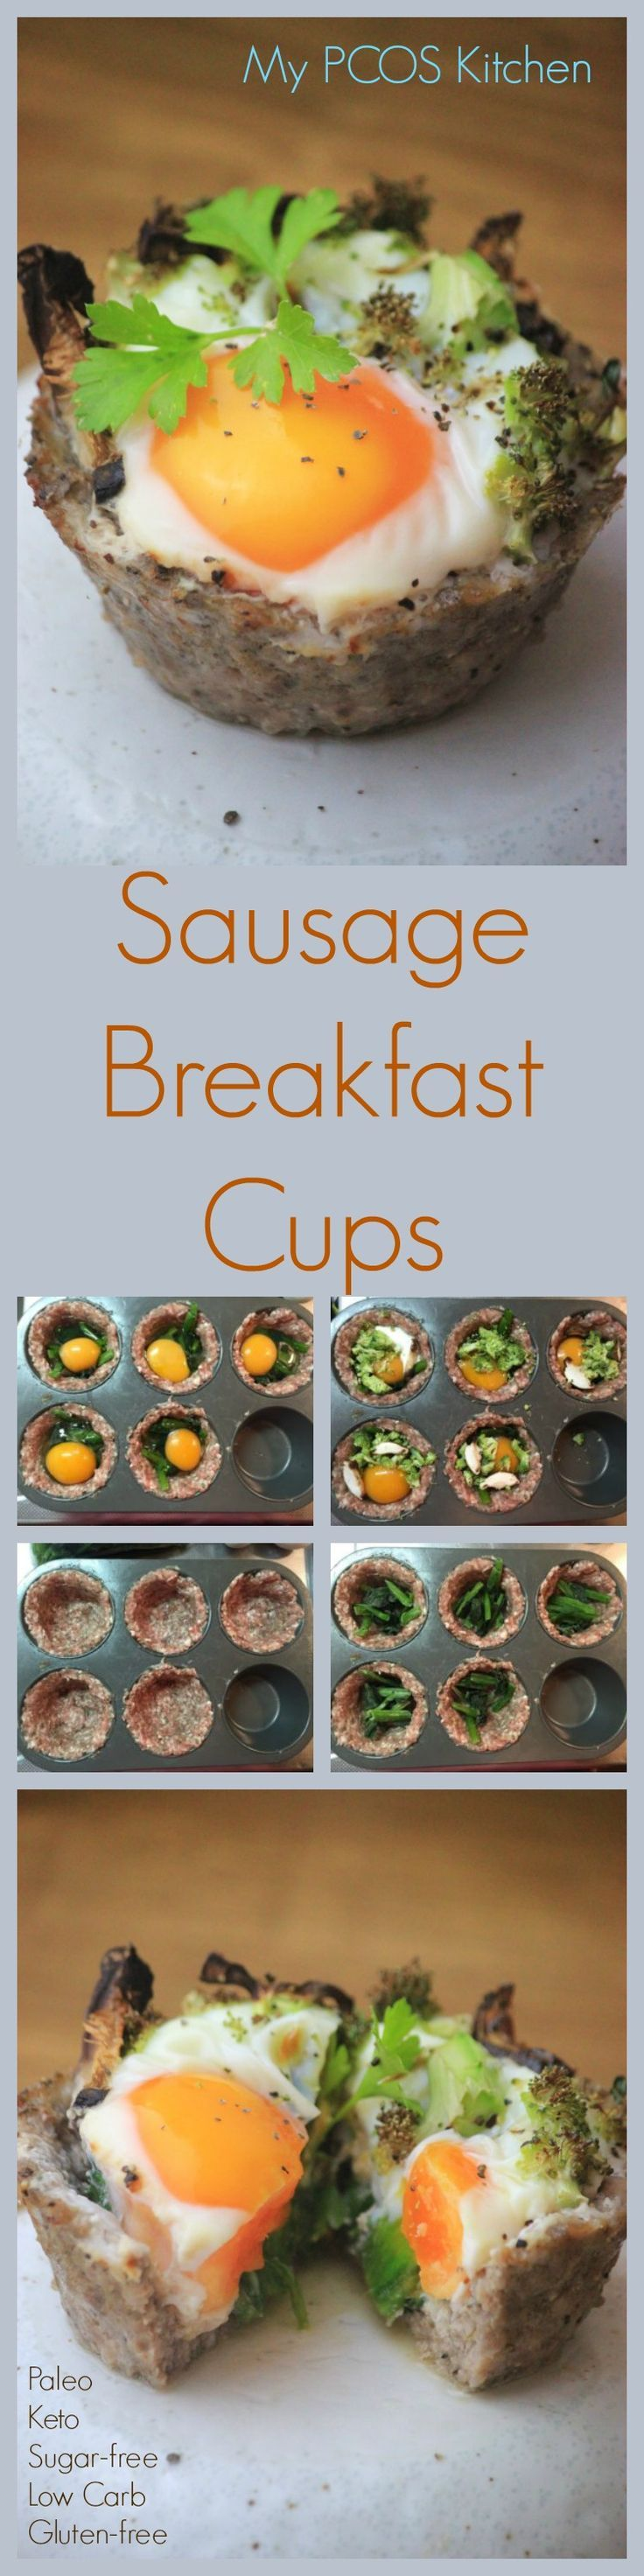 My PCOS Kitchen - Breakfast Sausage Cups - These muffin cups are lined with homemade sausage, filled with goodies and baked in the oven!